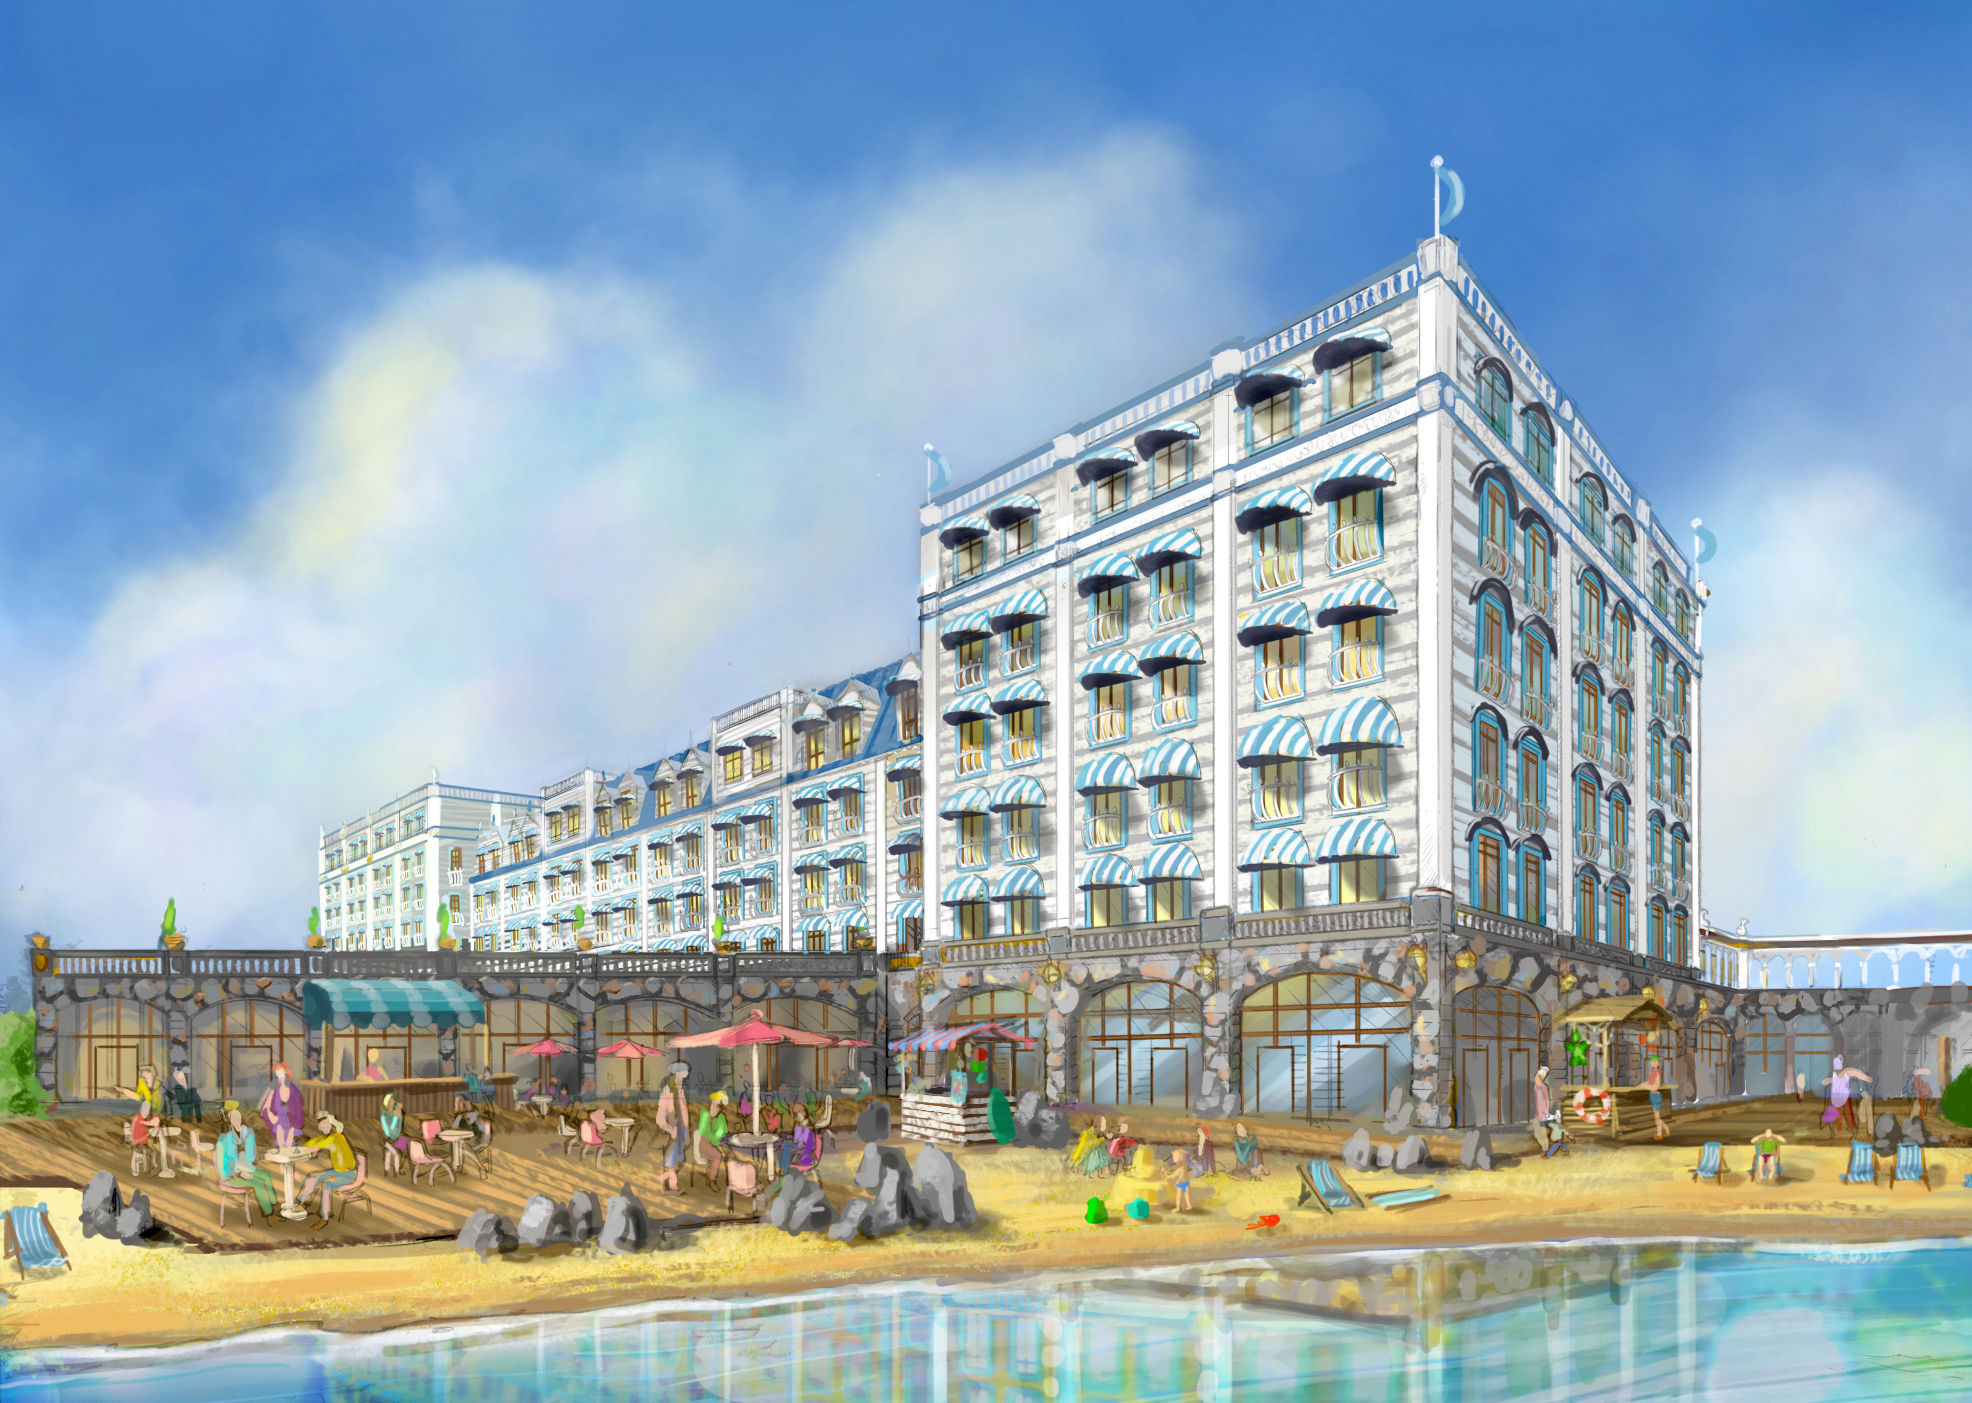 ADVENTURE WORLD AQUA HOTEL <strong>  This easy-going hotel continues the aquatic theme of the adjacent water park.</strong>